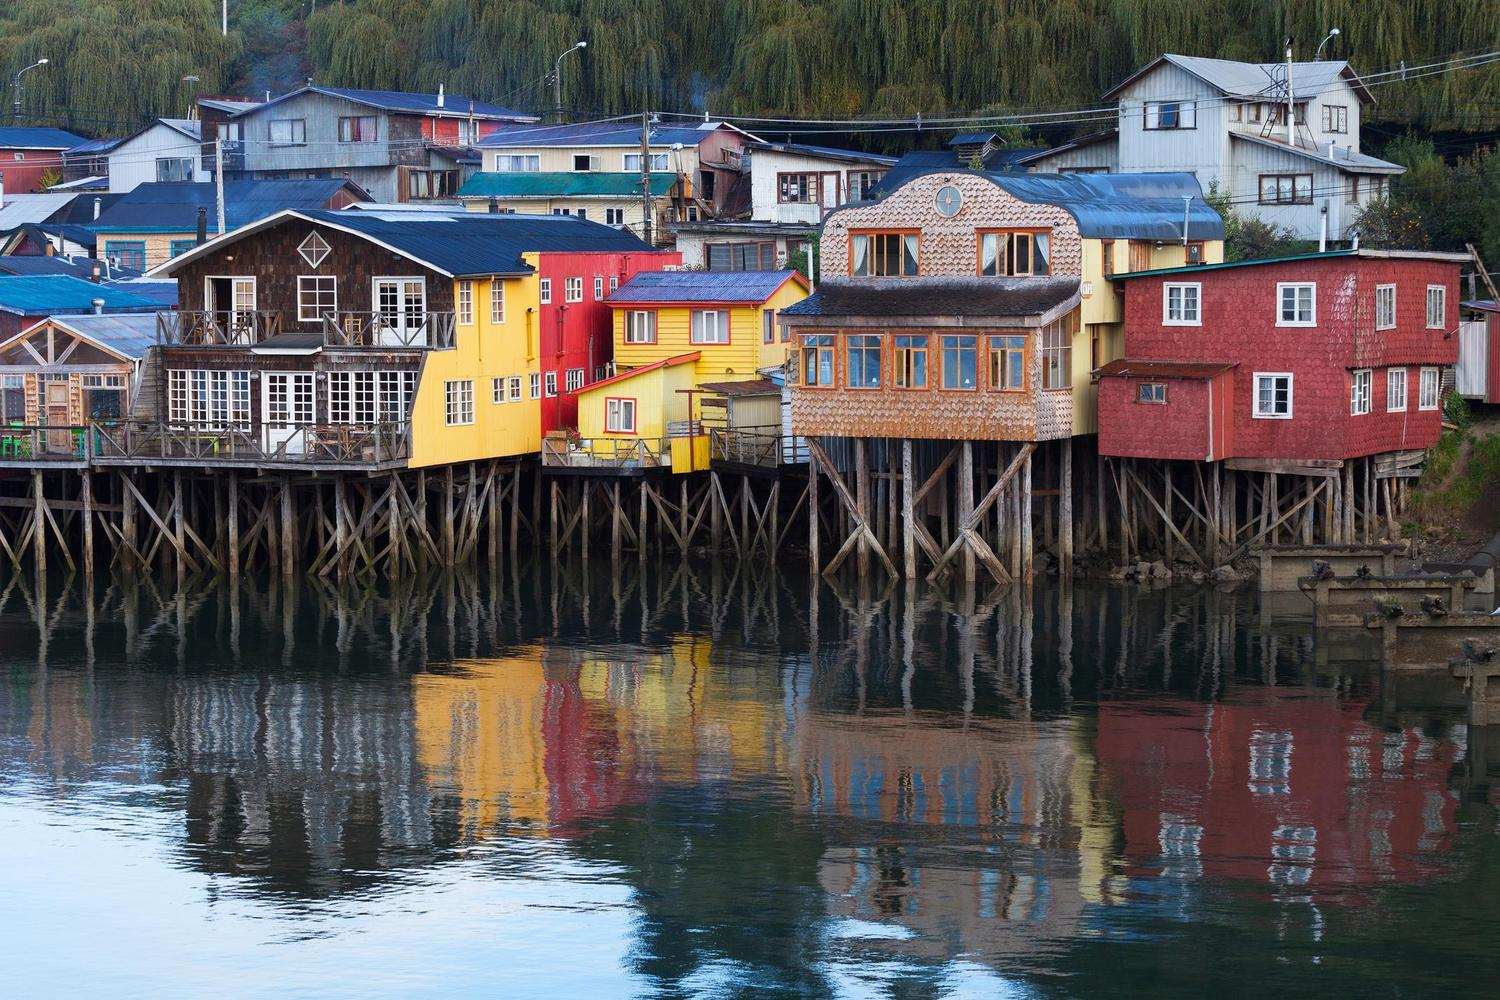 Palofito houses on the island of Chiloe Grande